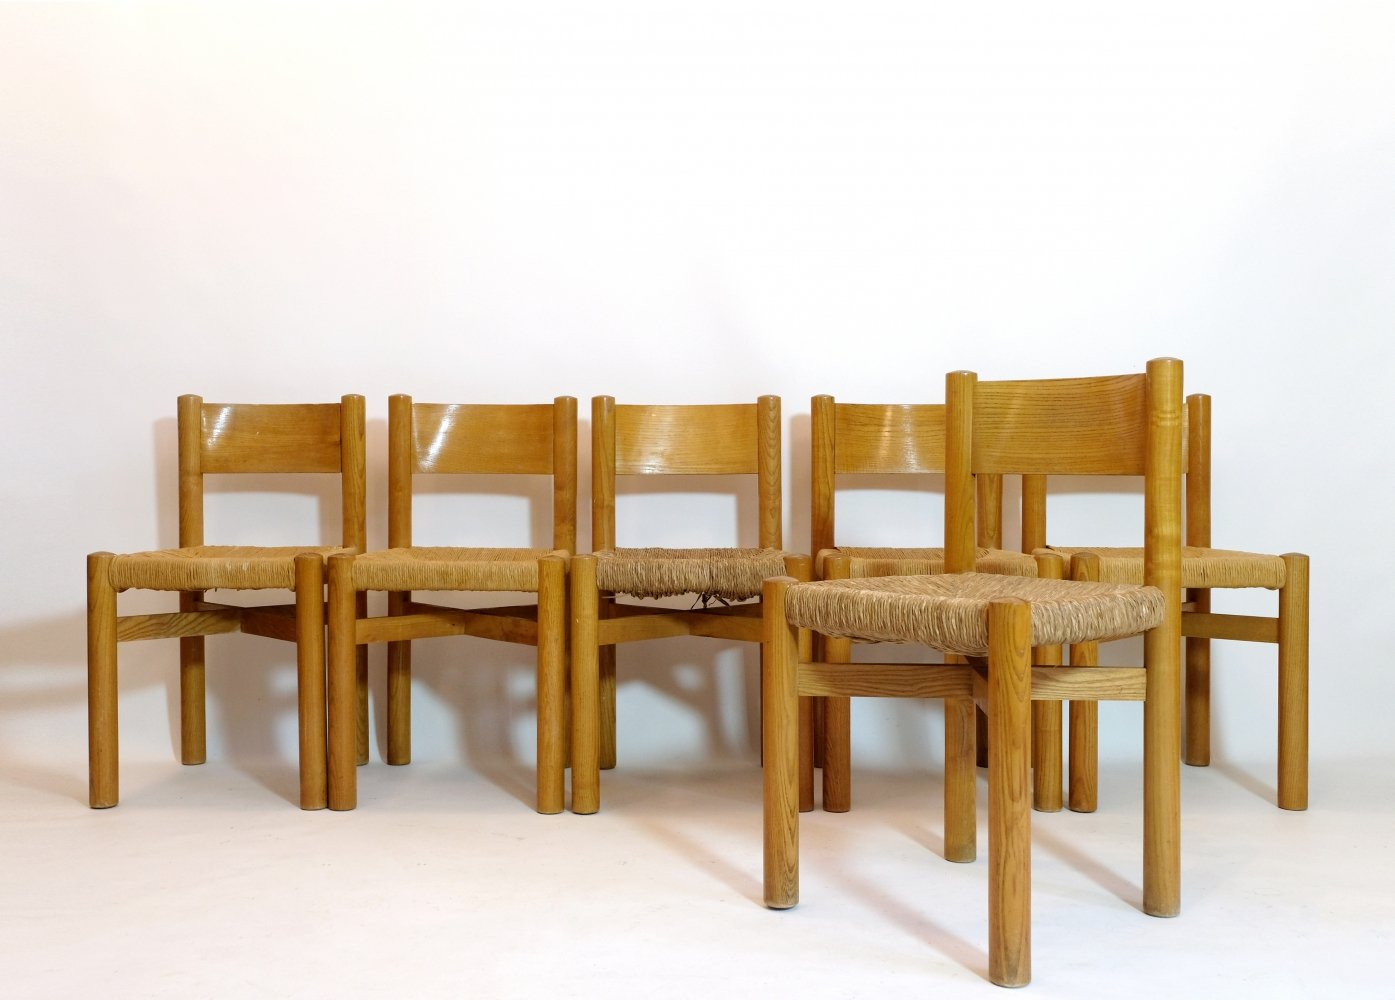 Set of 6 Meribel chairs by Charlotte Perriand, 1960s